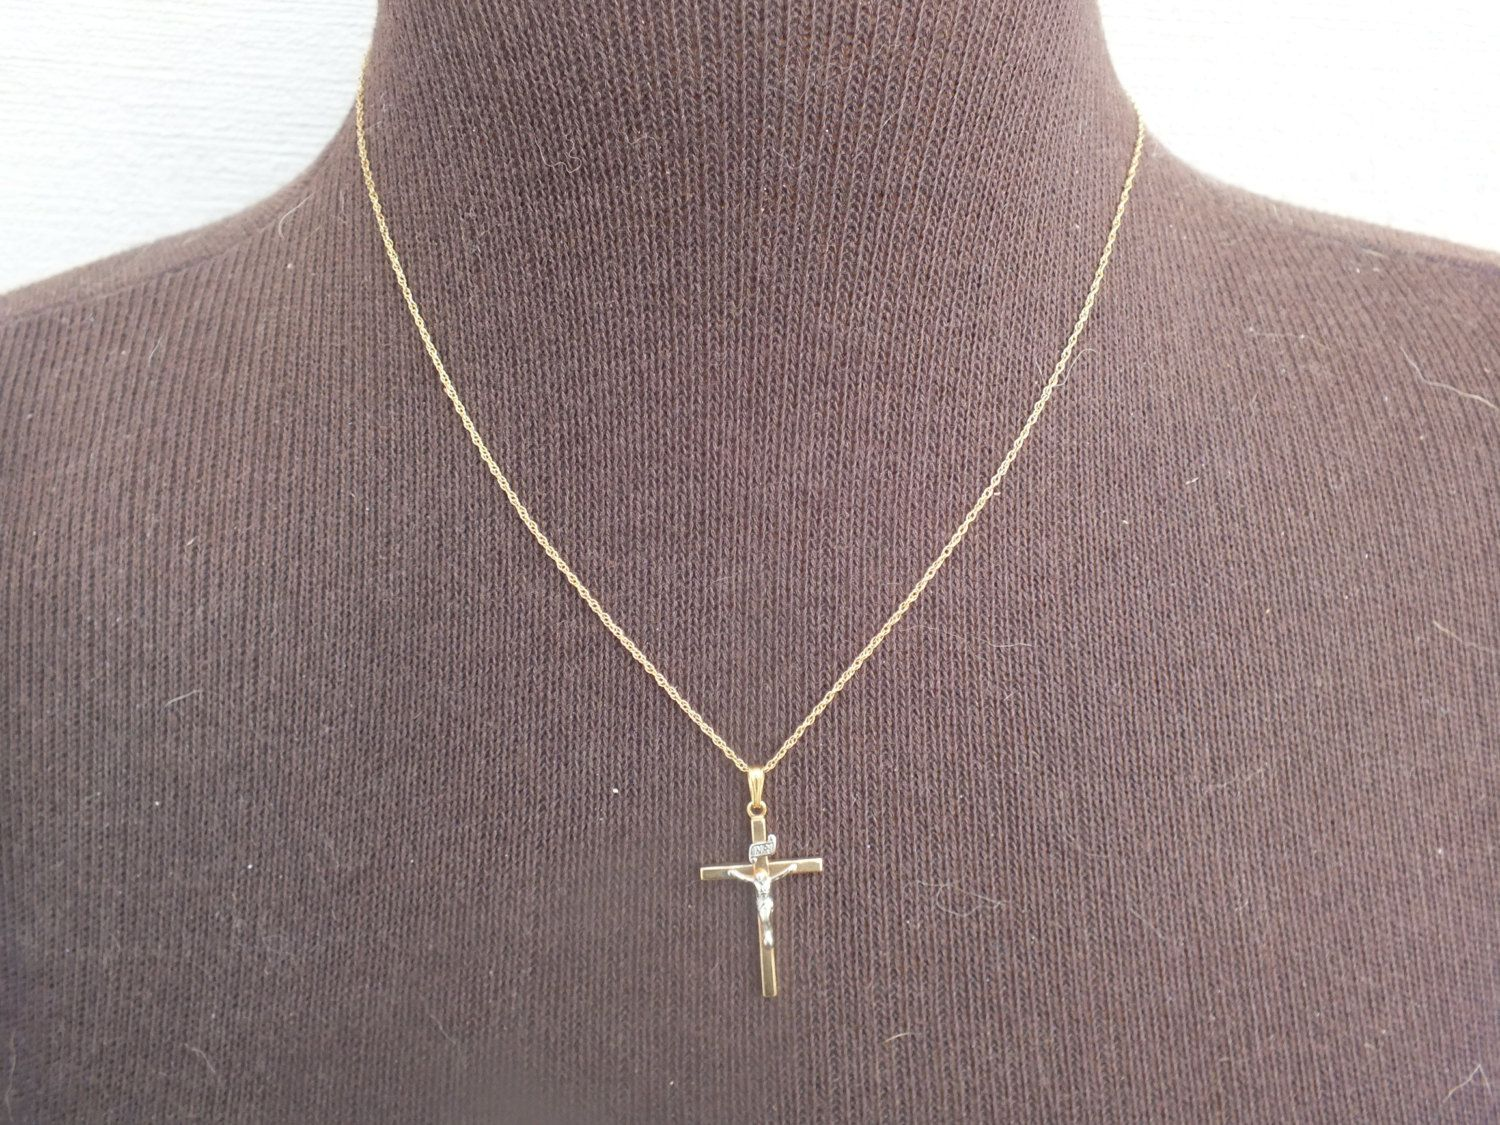 Vintage Signed PPC 14K Gold Filled Engraved Jesus on Cross Pendant and Chain, Beautiful Religious Necklace Jewelry, Free Shipping in USA by GiftShopVintage on Etsy